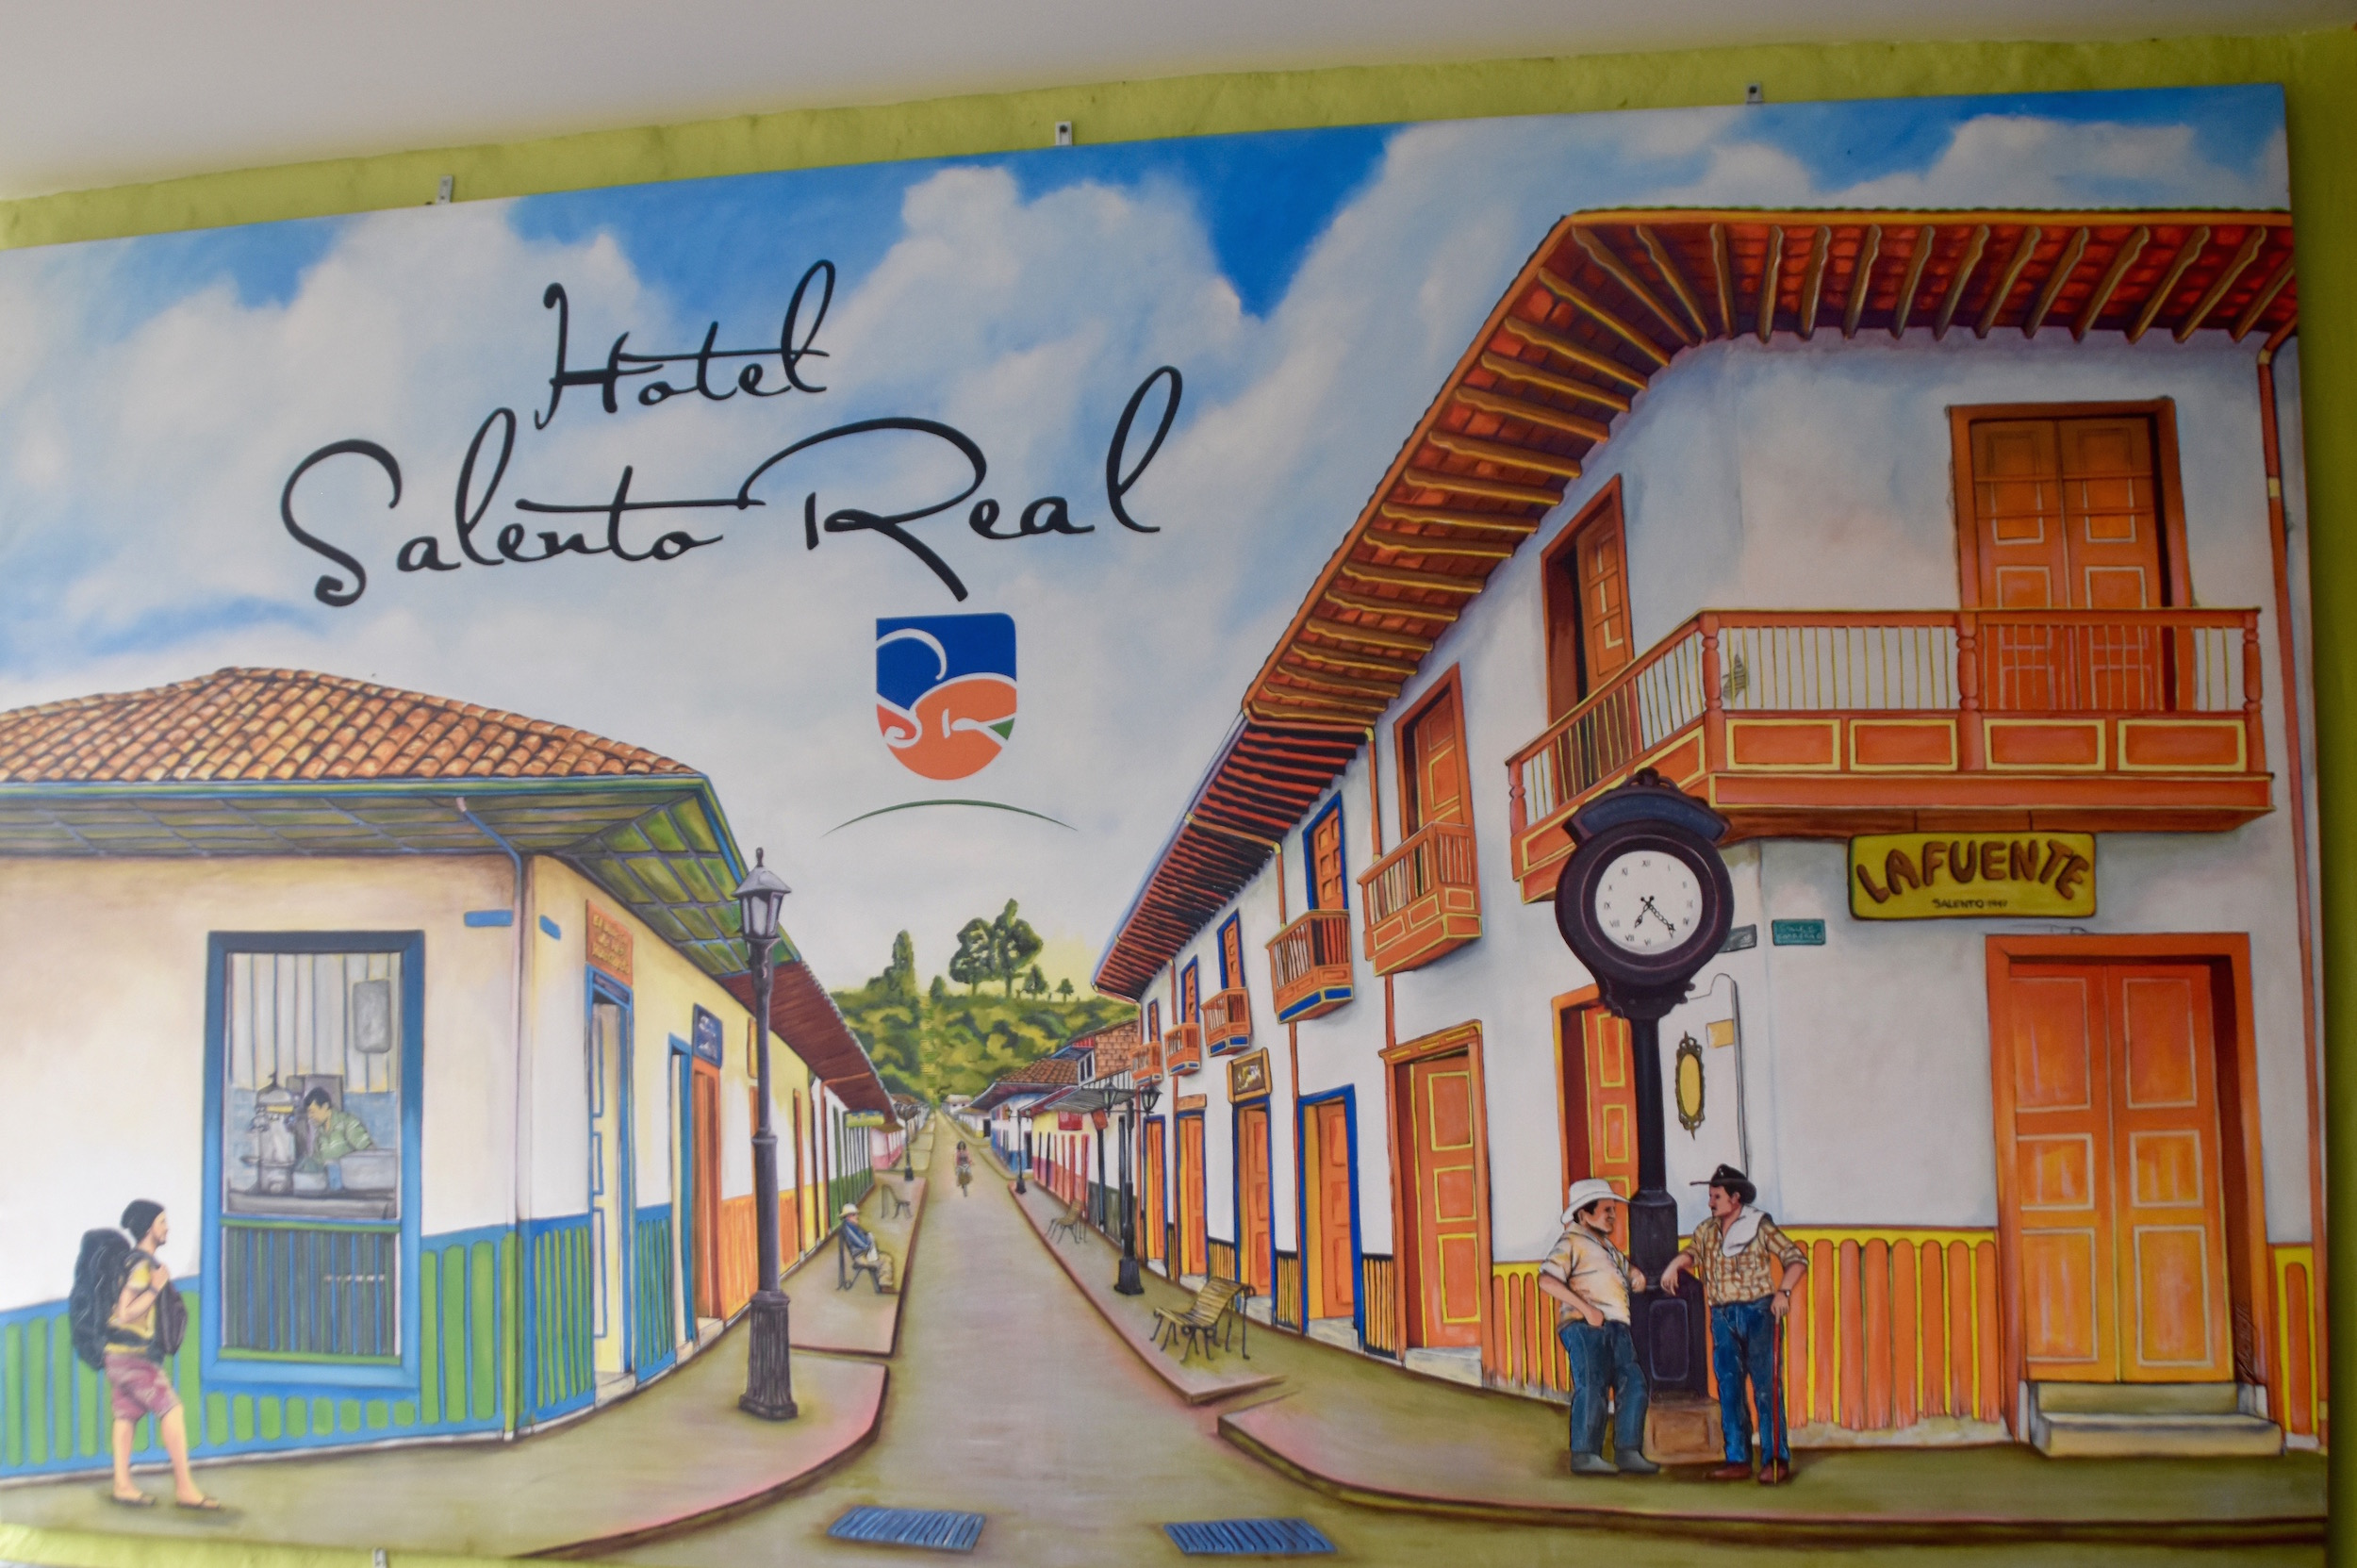 Hotel Salento Real Mural